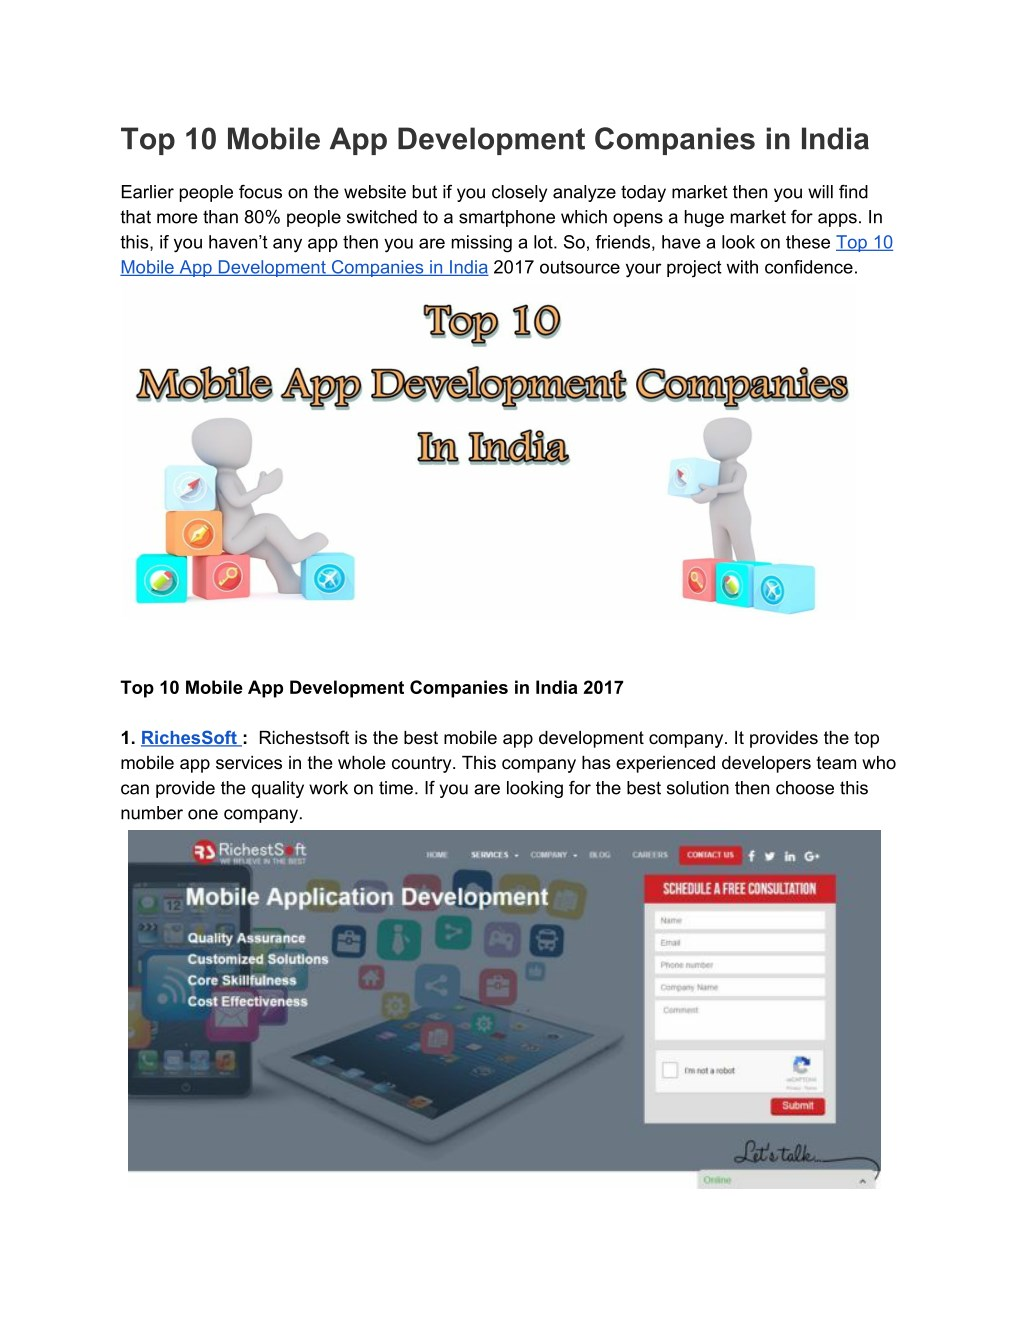 Ppt Top 10 Mobile App Development Companies In India Powerpoint Presentation Id 7632763